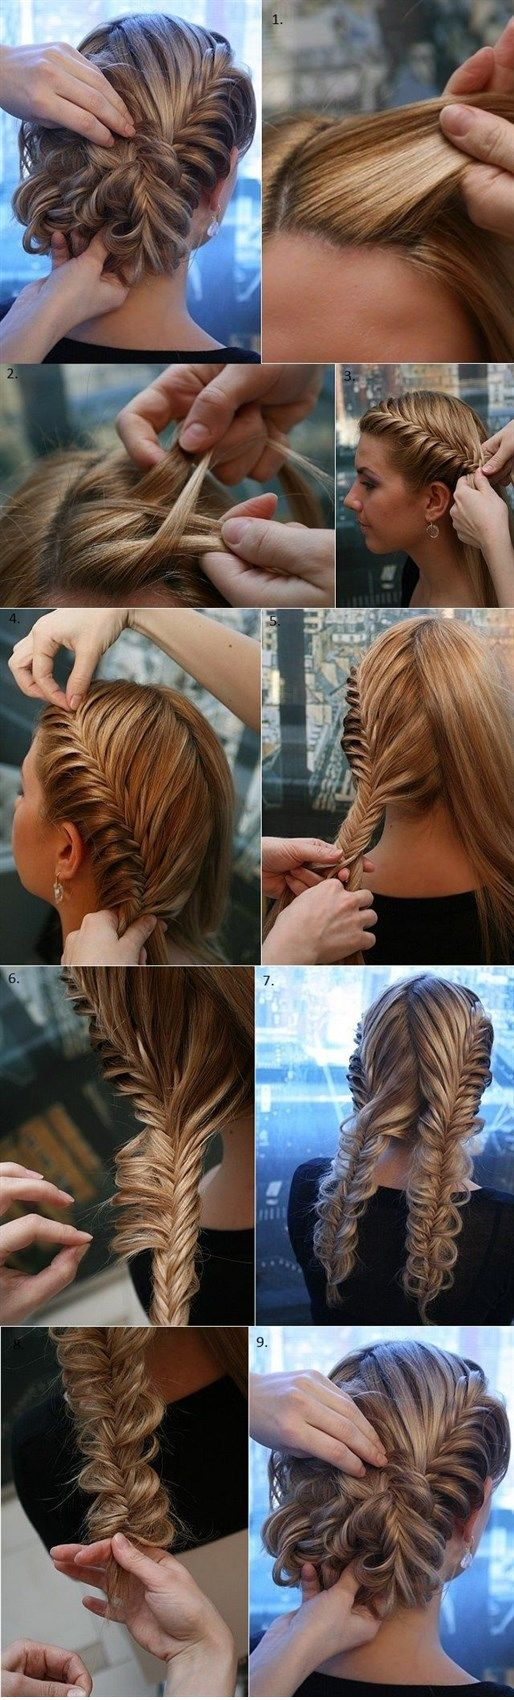 best прически images on pinterest hairstyle ideas hair ideas